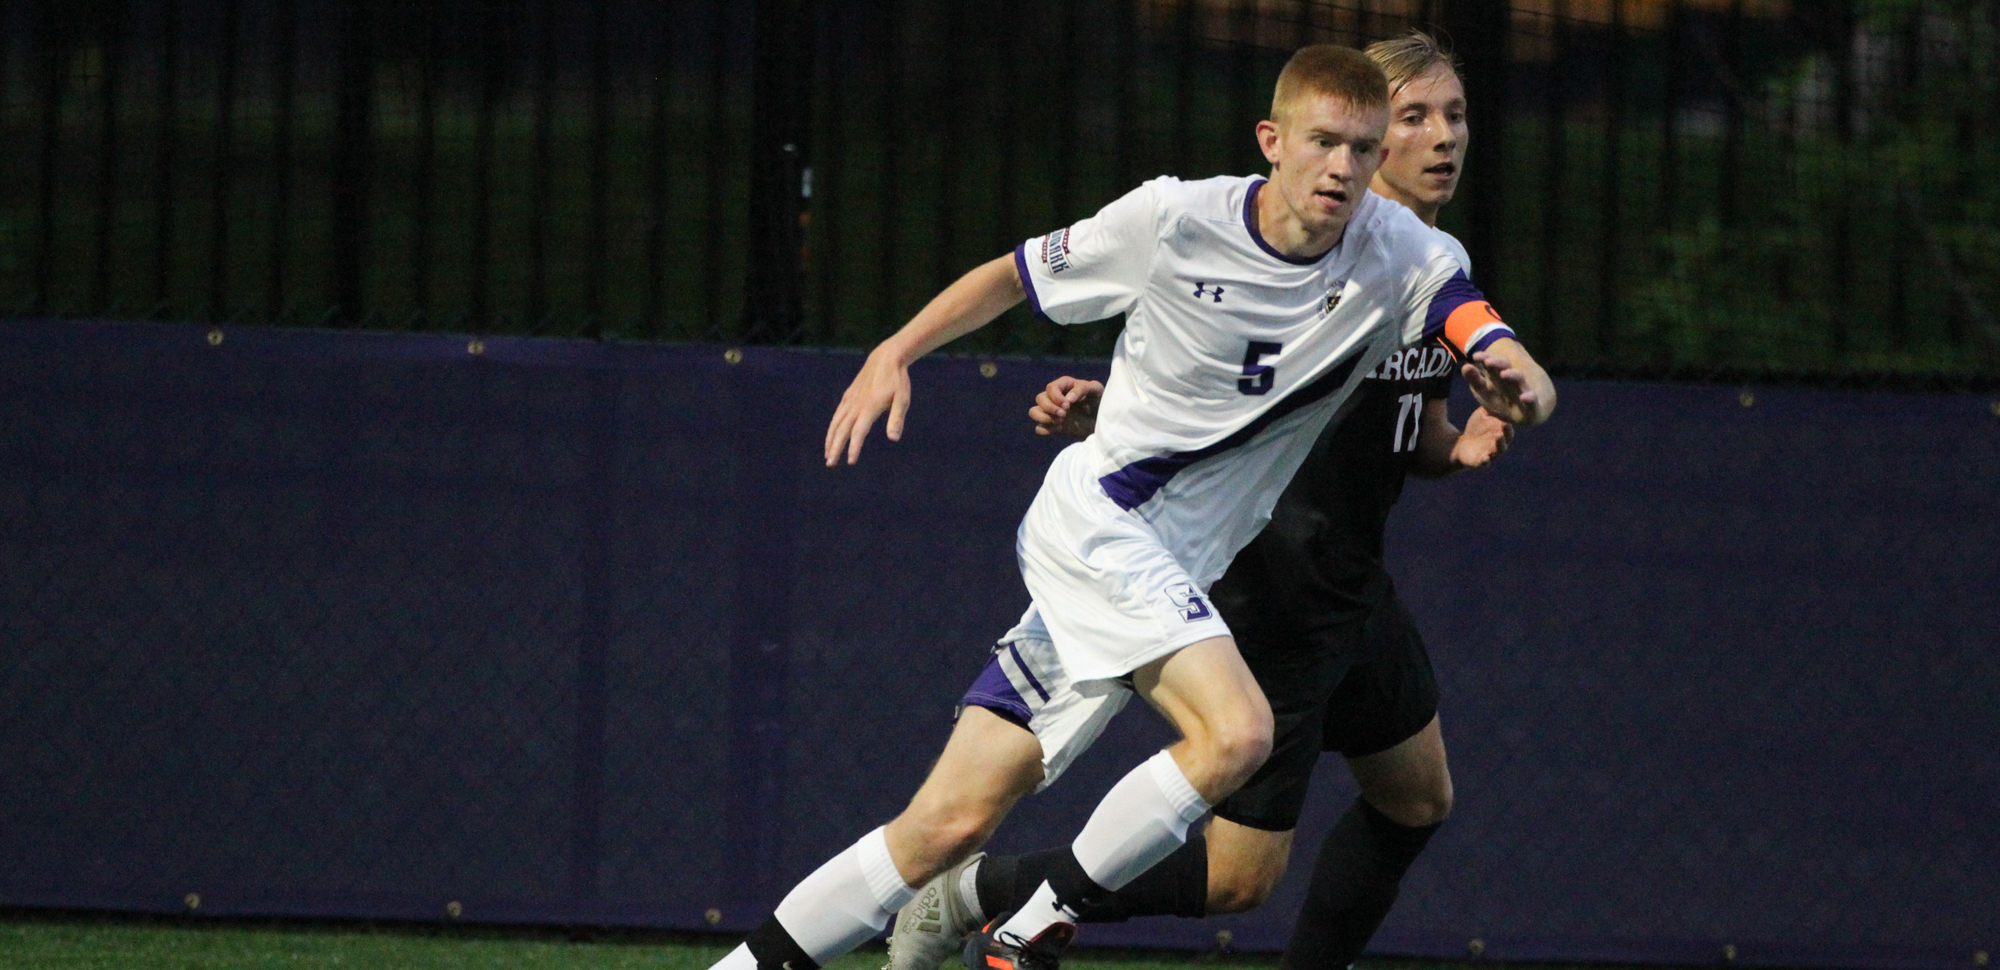 Patrick Prinner scored the only goal in Scranton's key Landmark Conference win at Susquehanna on Saturday.